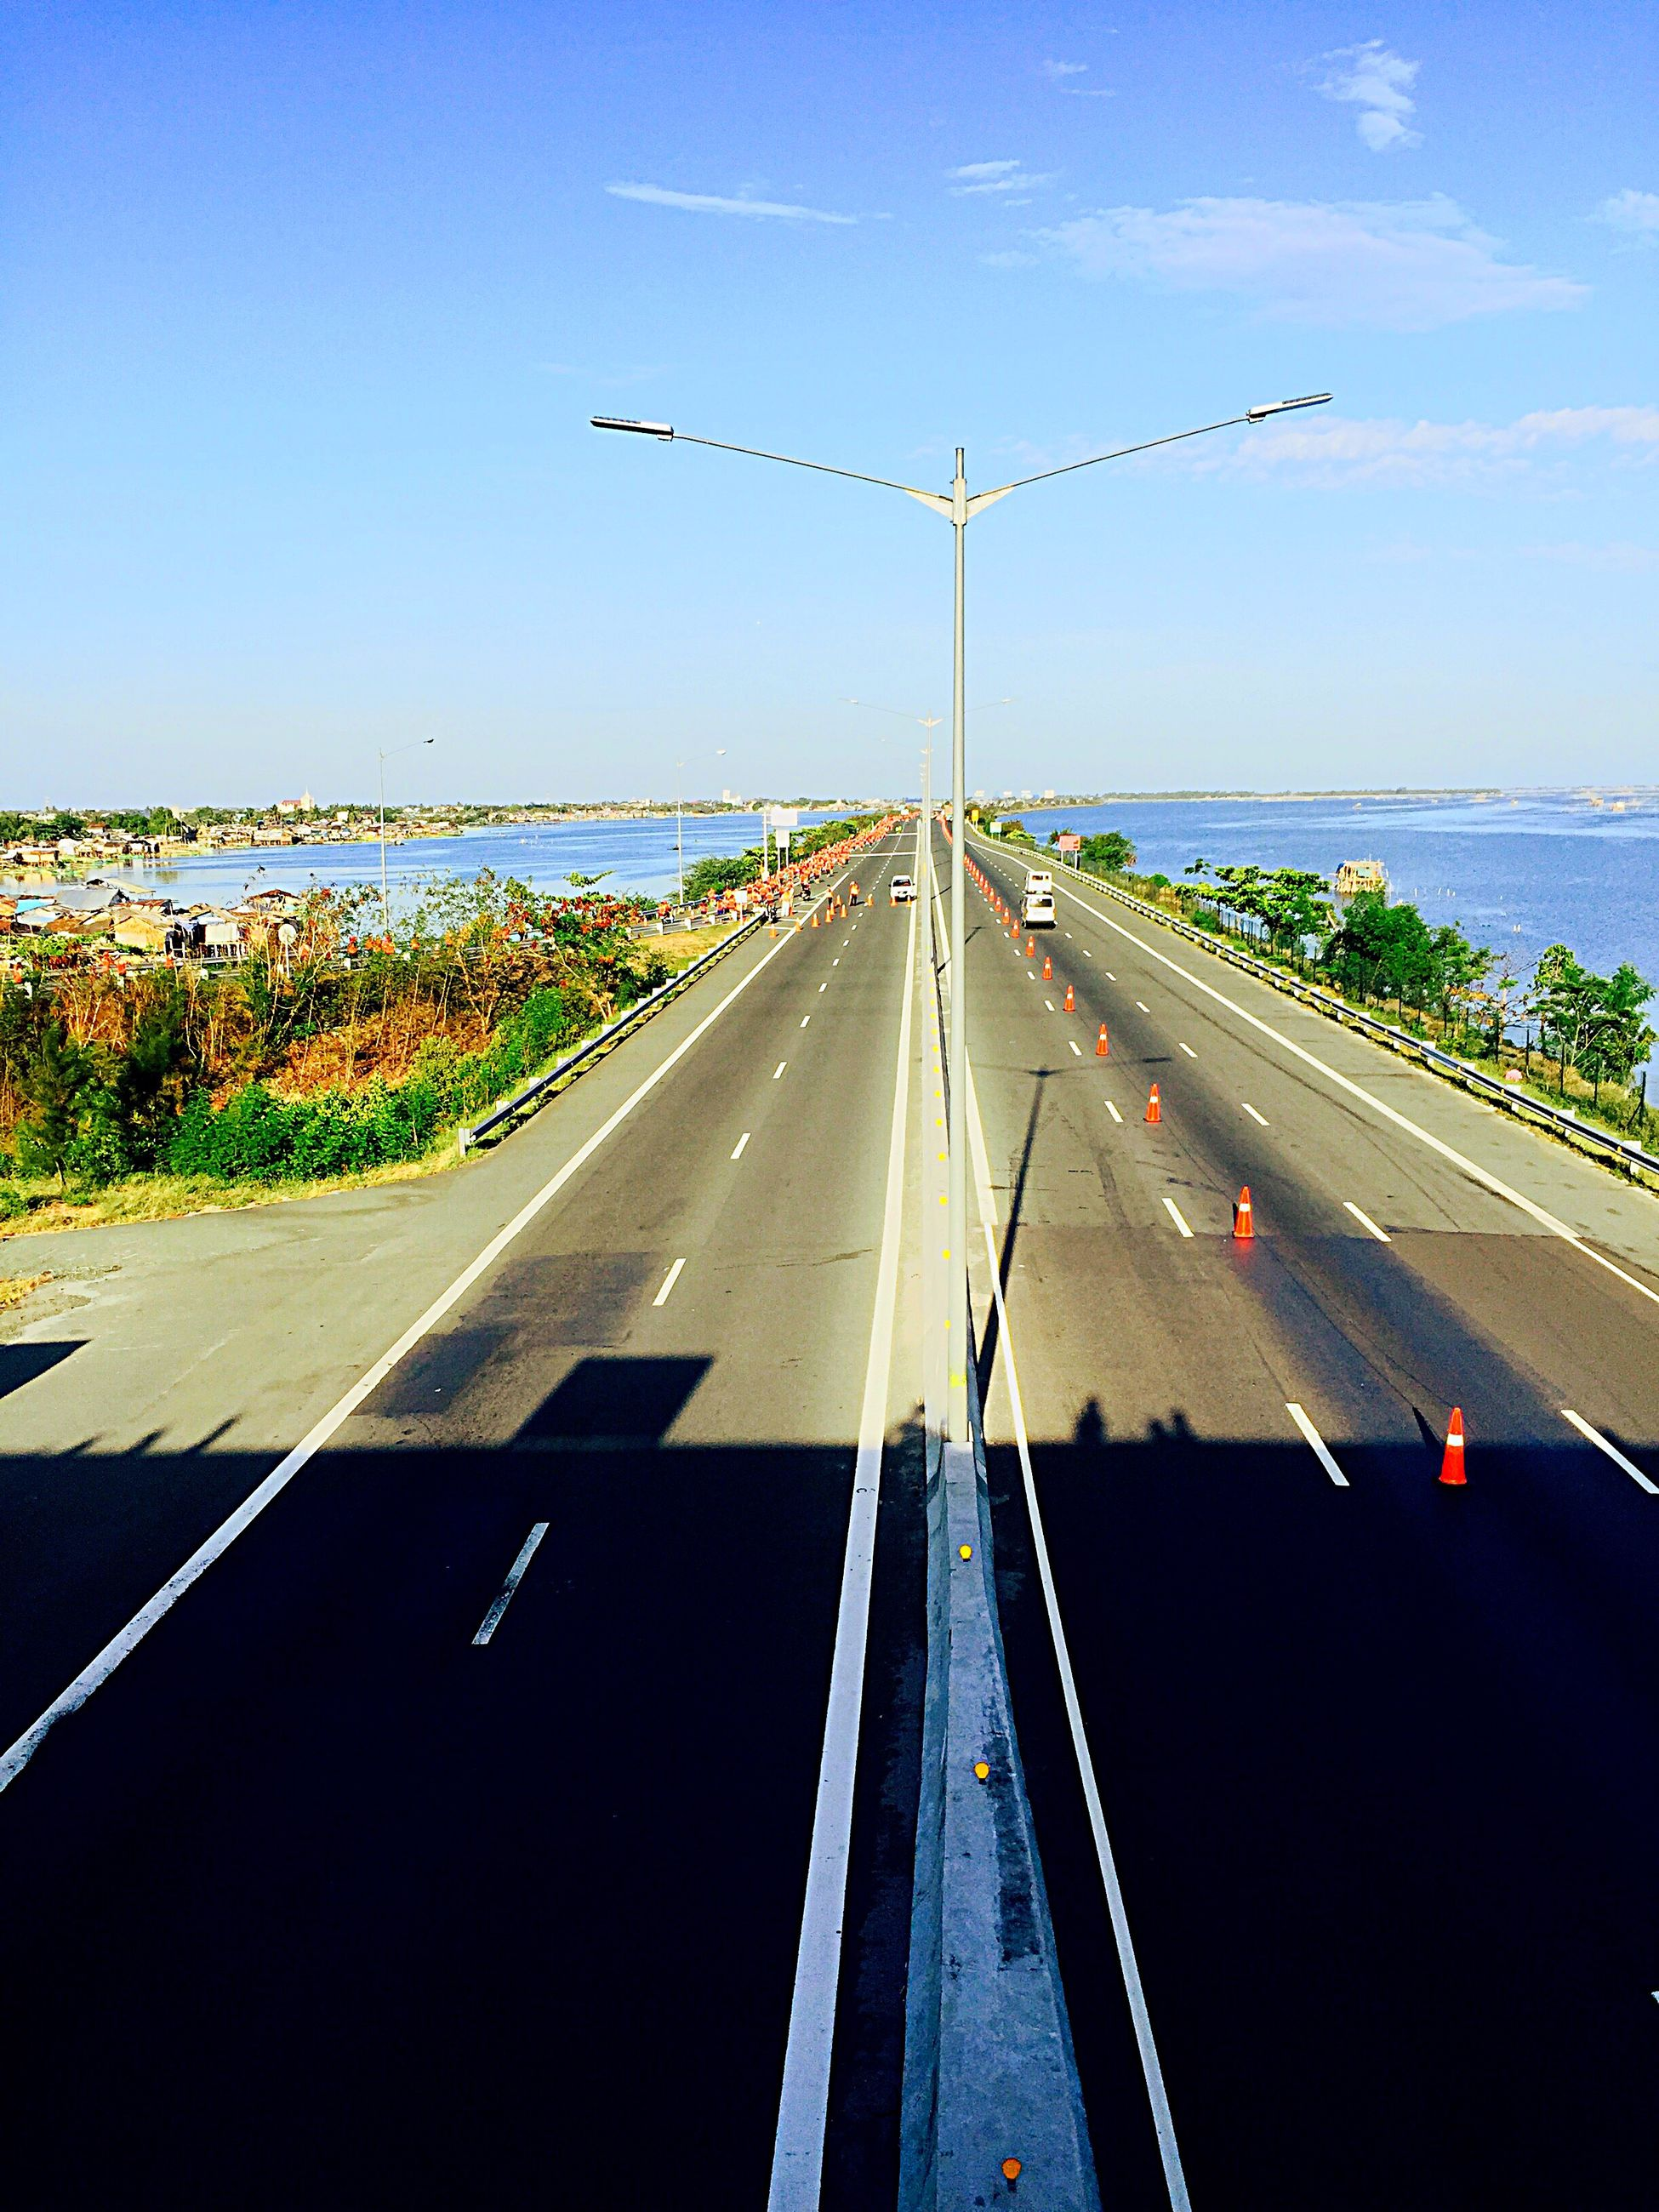 transportation, road marking, mode of transport, road, car, land vehicle, the way forward, on the move, highway, diminishing perspective, travel, windshield, sky, vanishing point, clear sky, street, journey, high angle view, dividing line, traffic